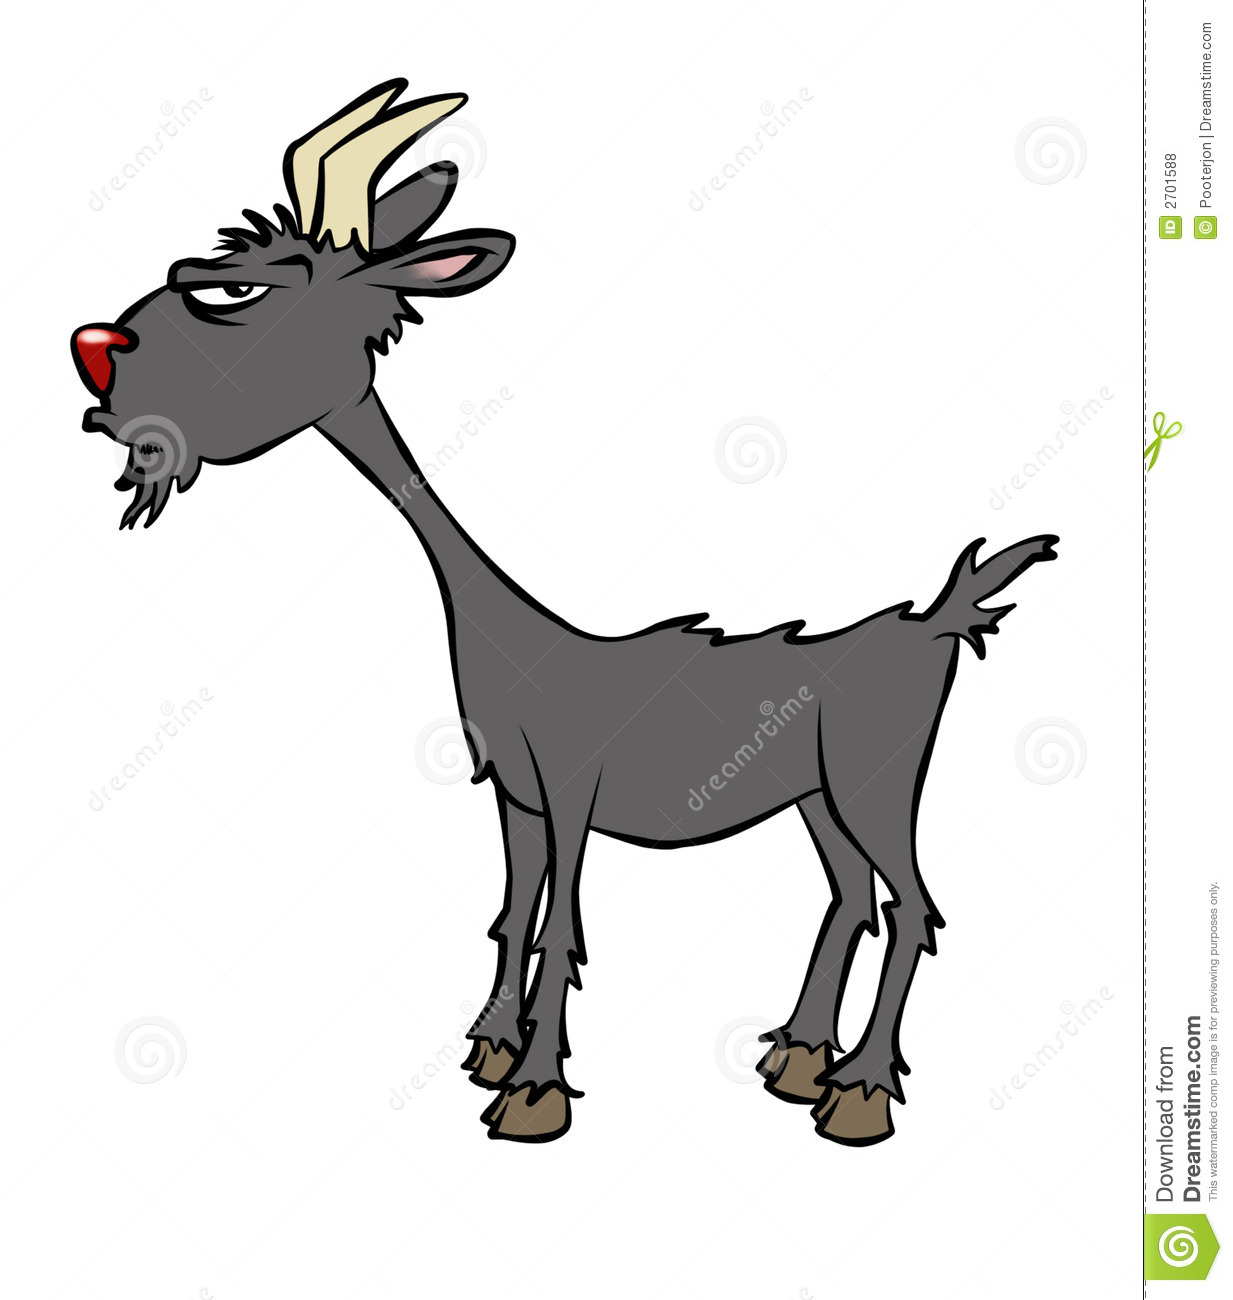 Billy Goat clipart cartoon Clipart Goat Goat drawings #5